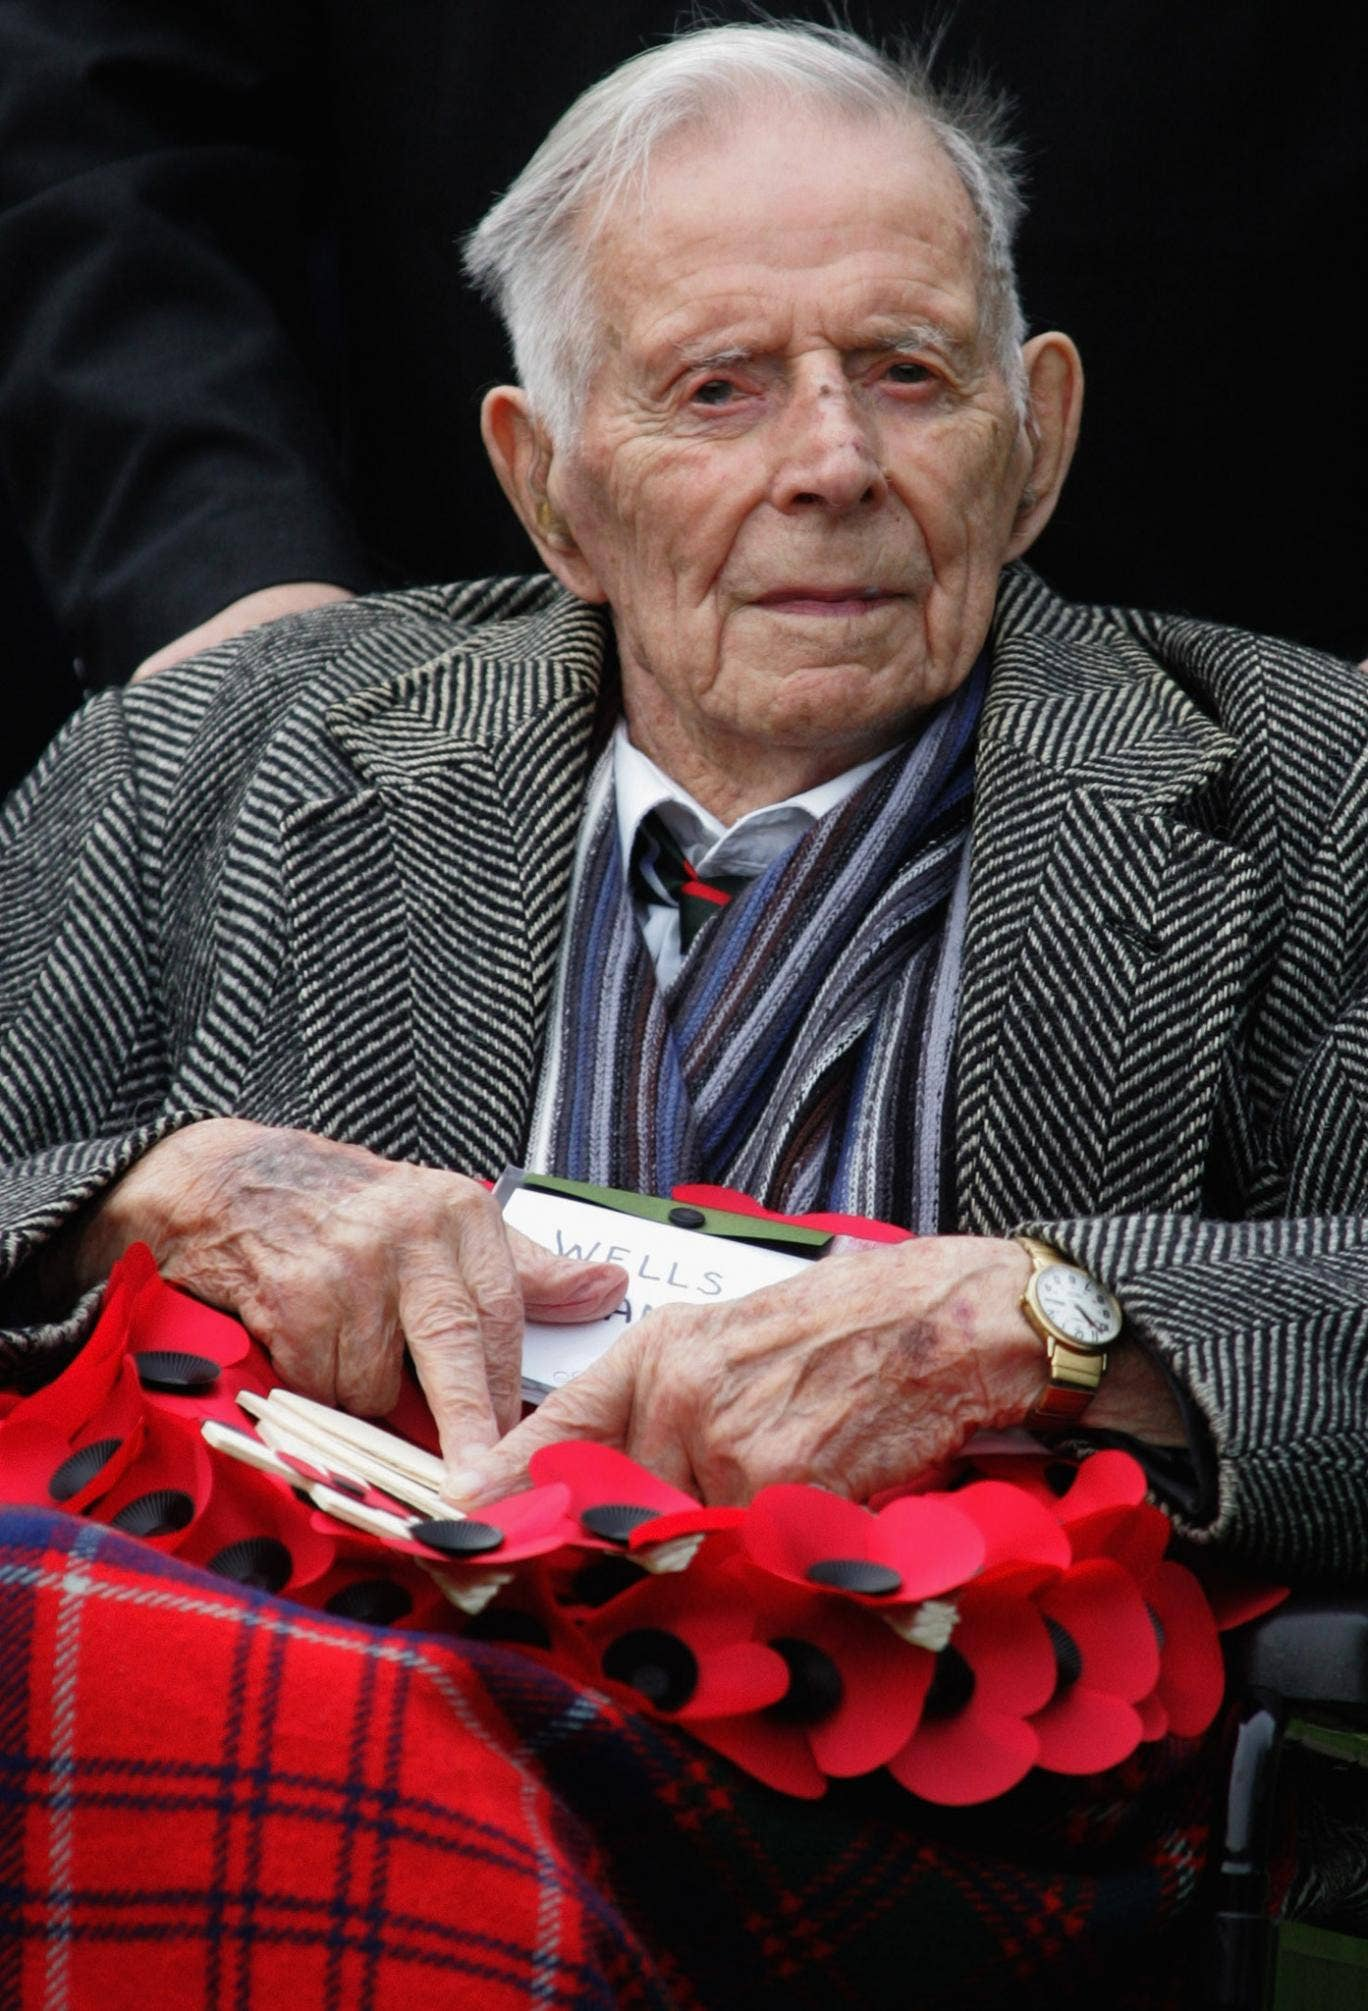 After the death of the last British survivor of the trenches, Harry Patch, above, the Government is keen to preserve the memories of the war for future generations.